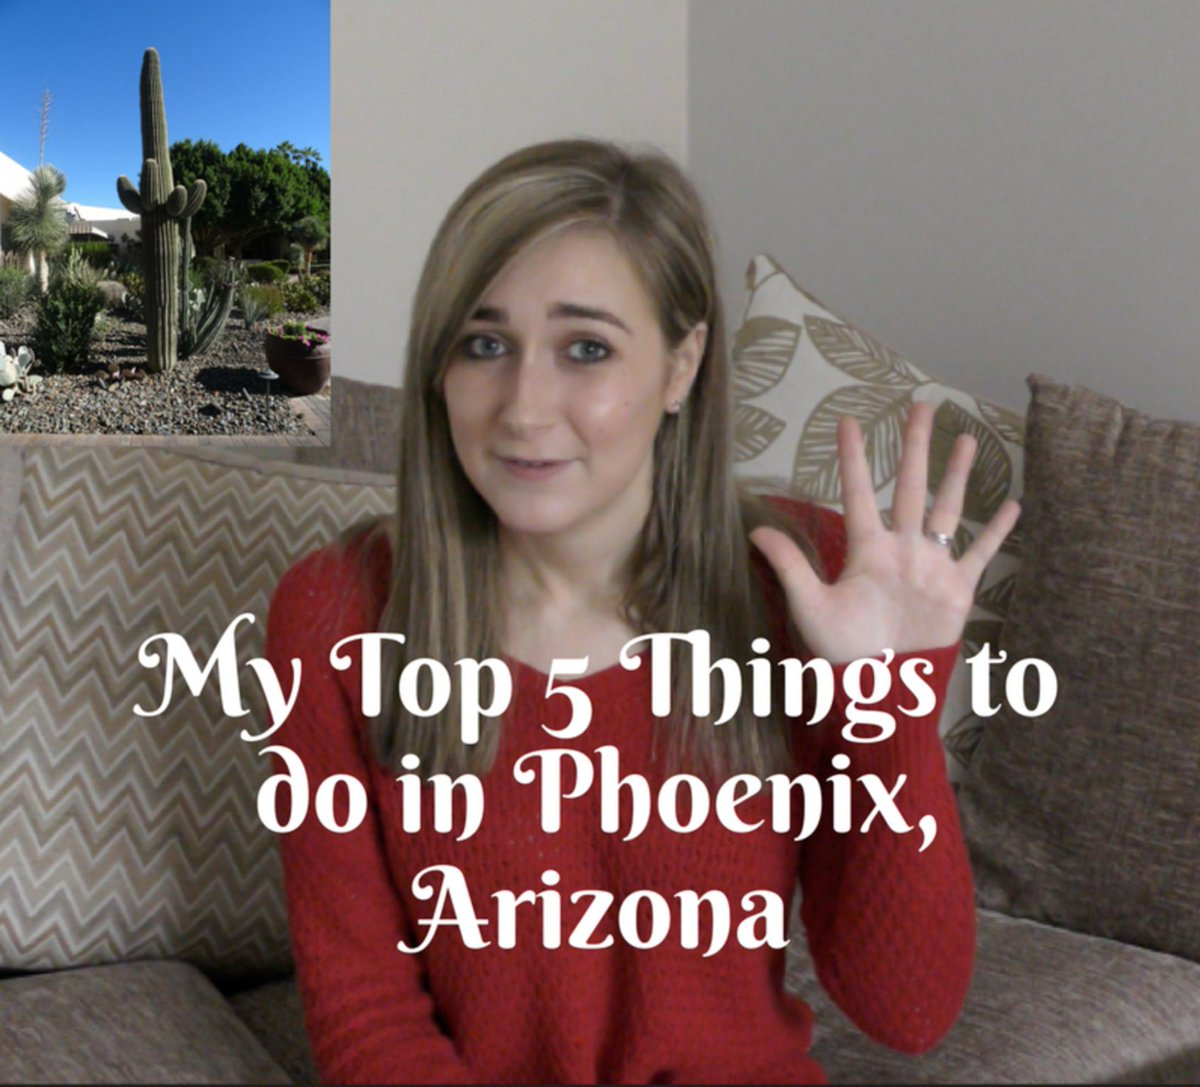 Evening! My latest vlog is now live  Check out my top 5 things to do in Phoenix, Arizona right here: https:// youtu.be/2qwD65jRMGY  &nbsp;   #vlog #vlogger #travel #america #usa #phoenix #arizona #mytopfive #toptraveltips #toptips #thingstodo #presenter #presenterlife #TV #radio<br>http://pic.twitter.com/dyWxVtorOT